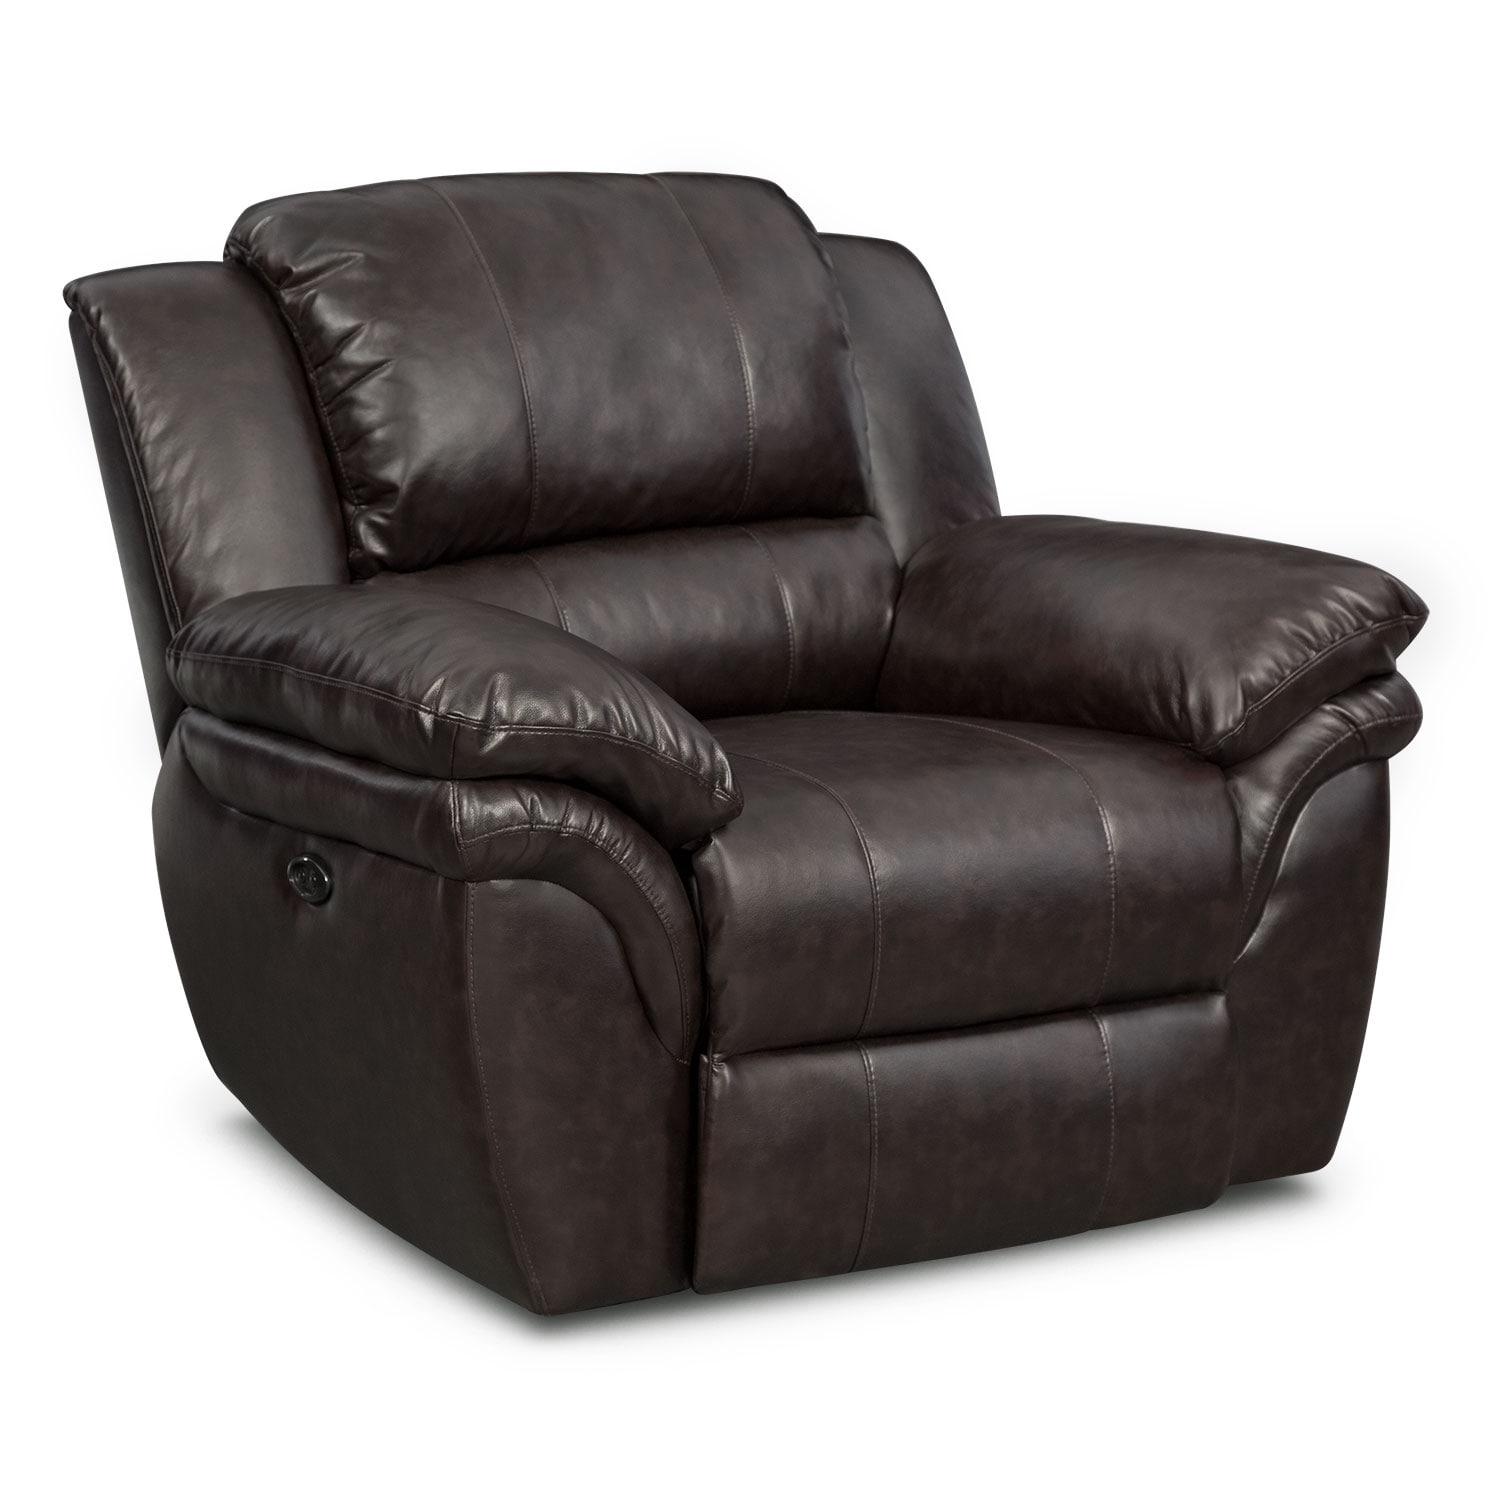 Aldo Power Recliner   Brown